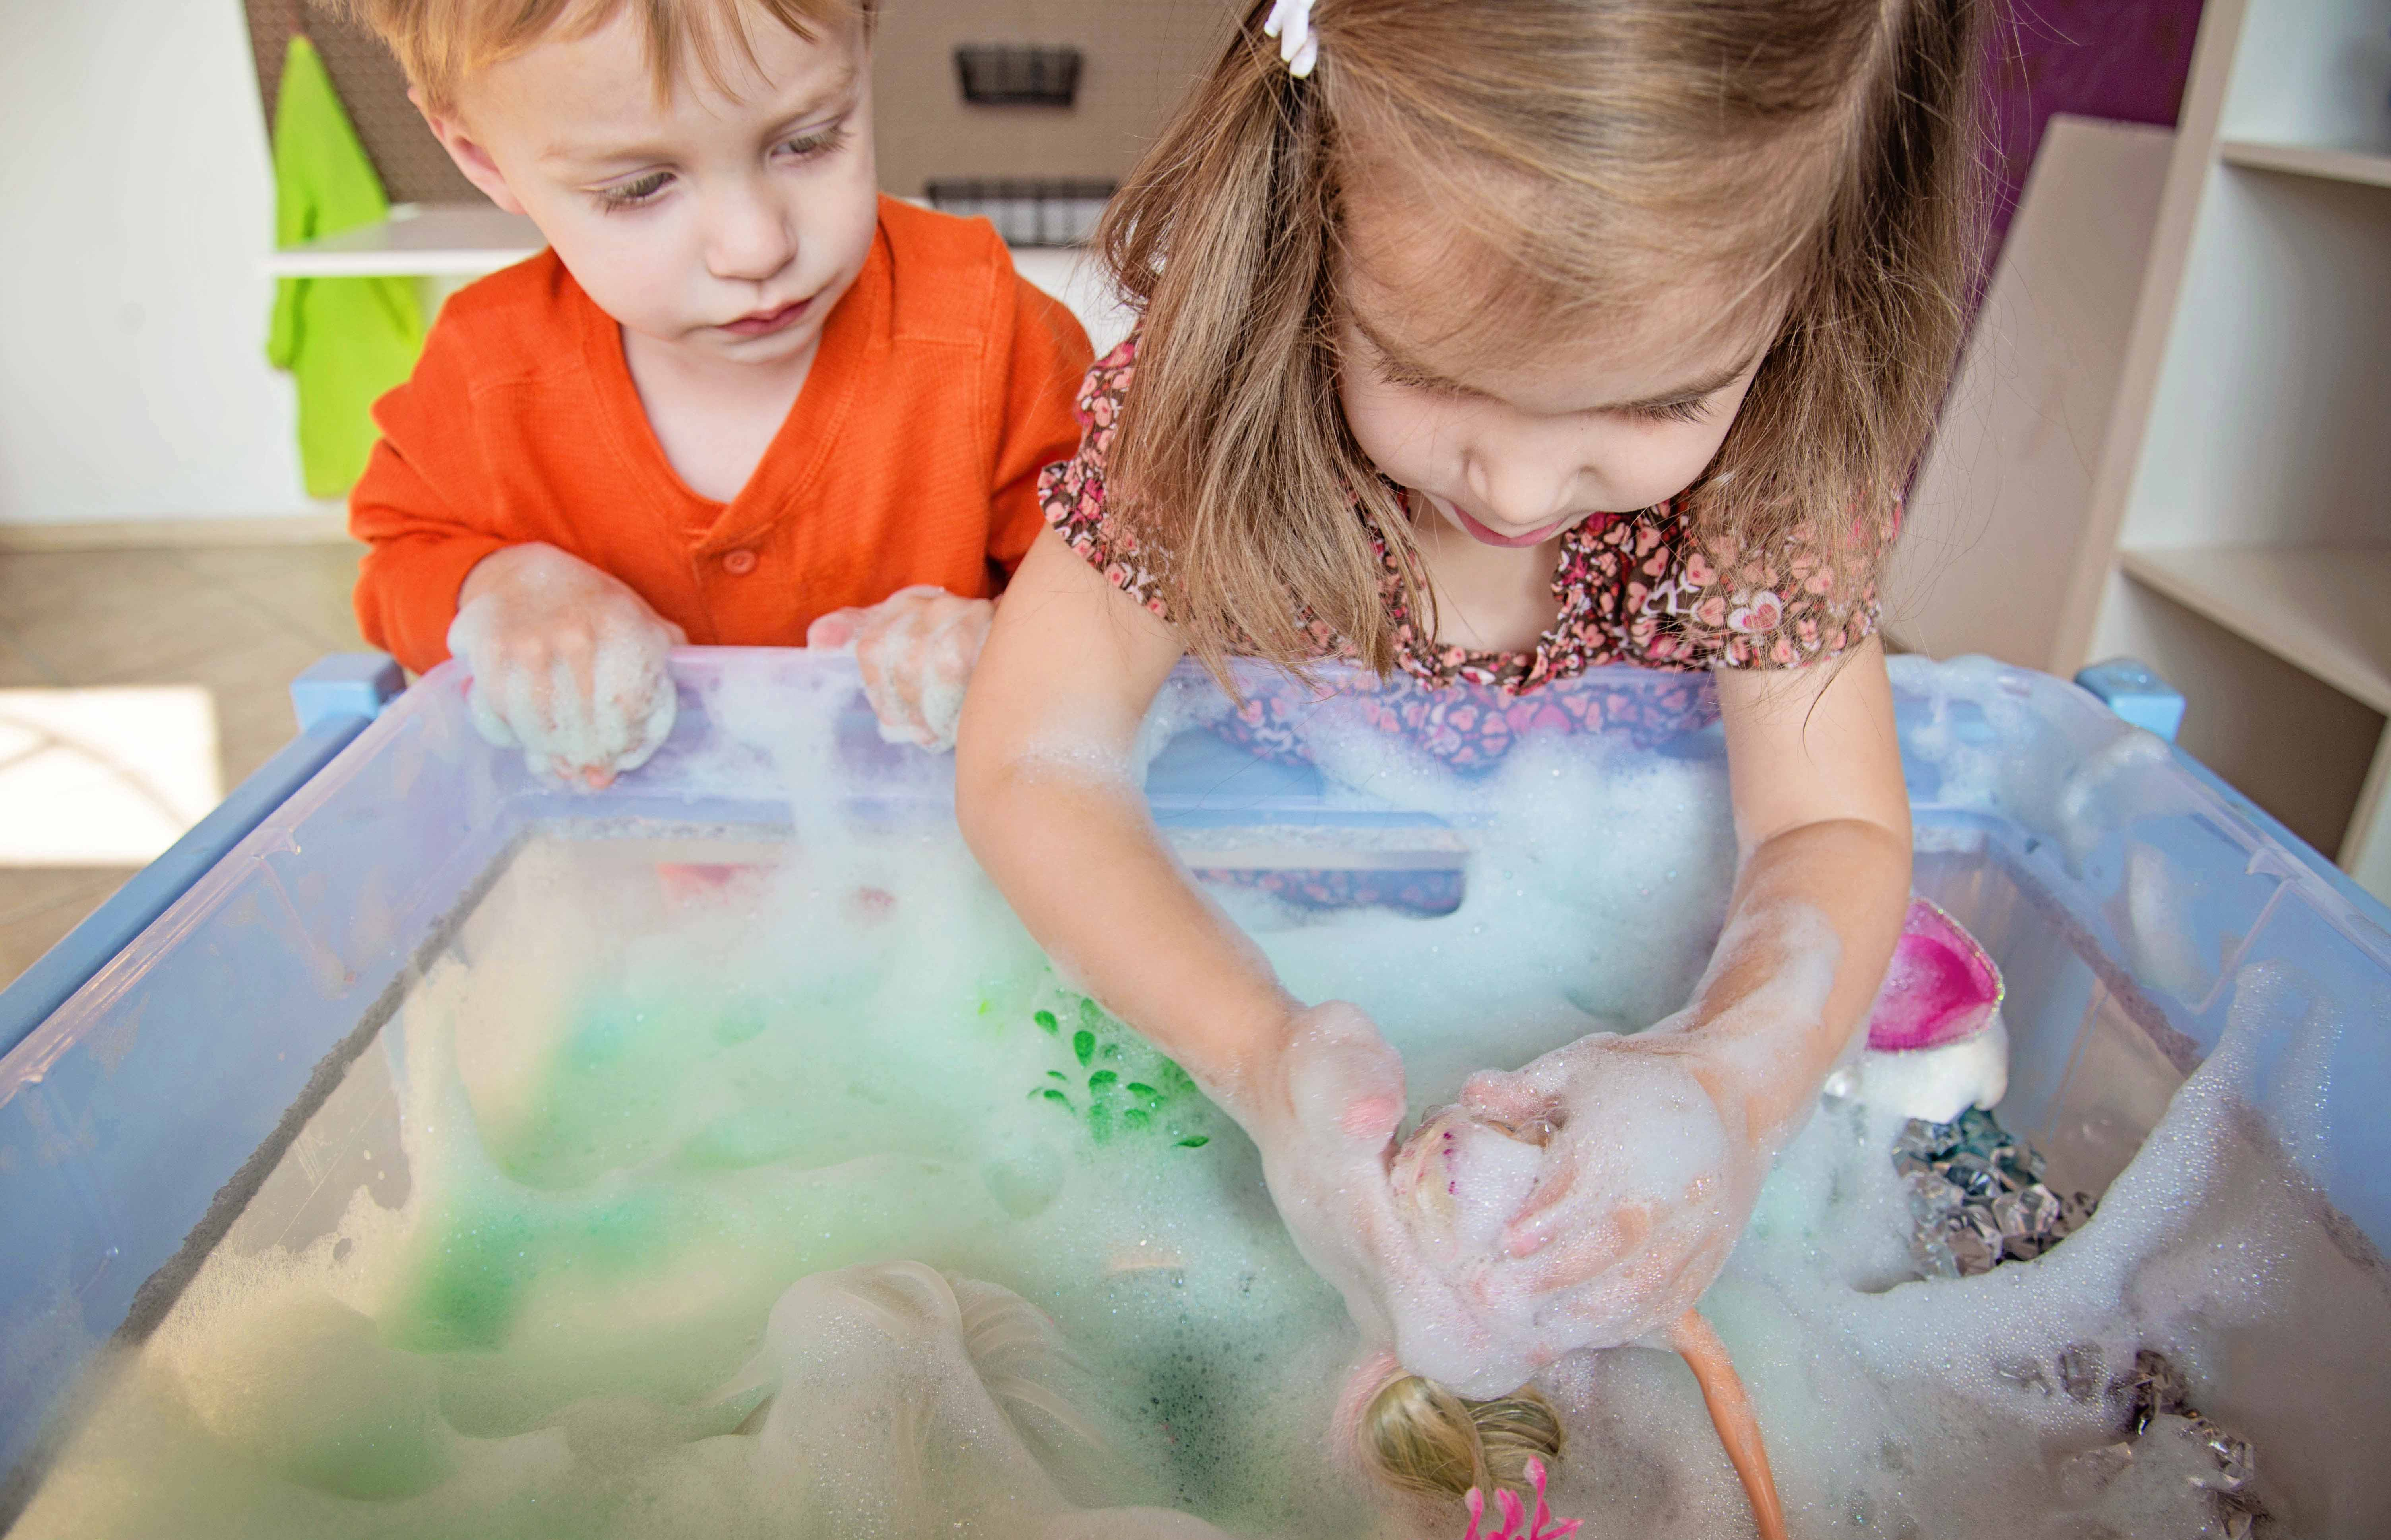 Babes in Deutschland, Mermaid lagoon sensory bin with colored soap foam!